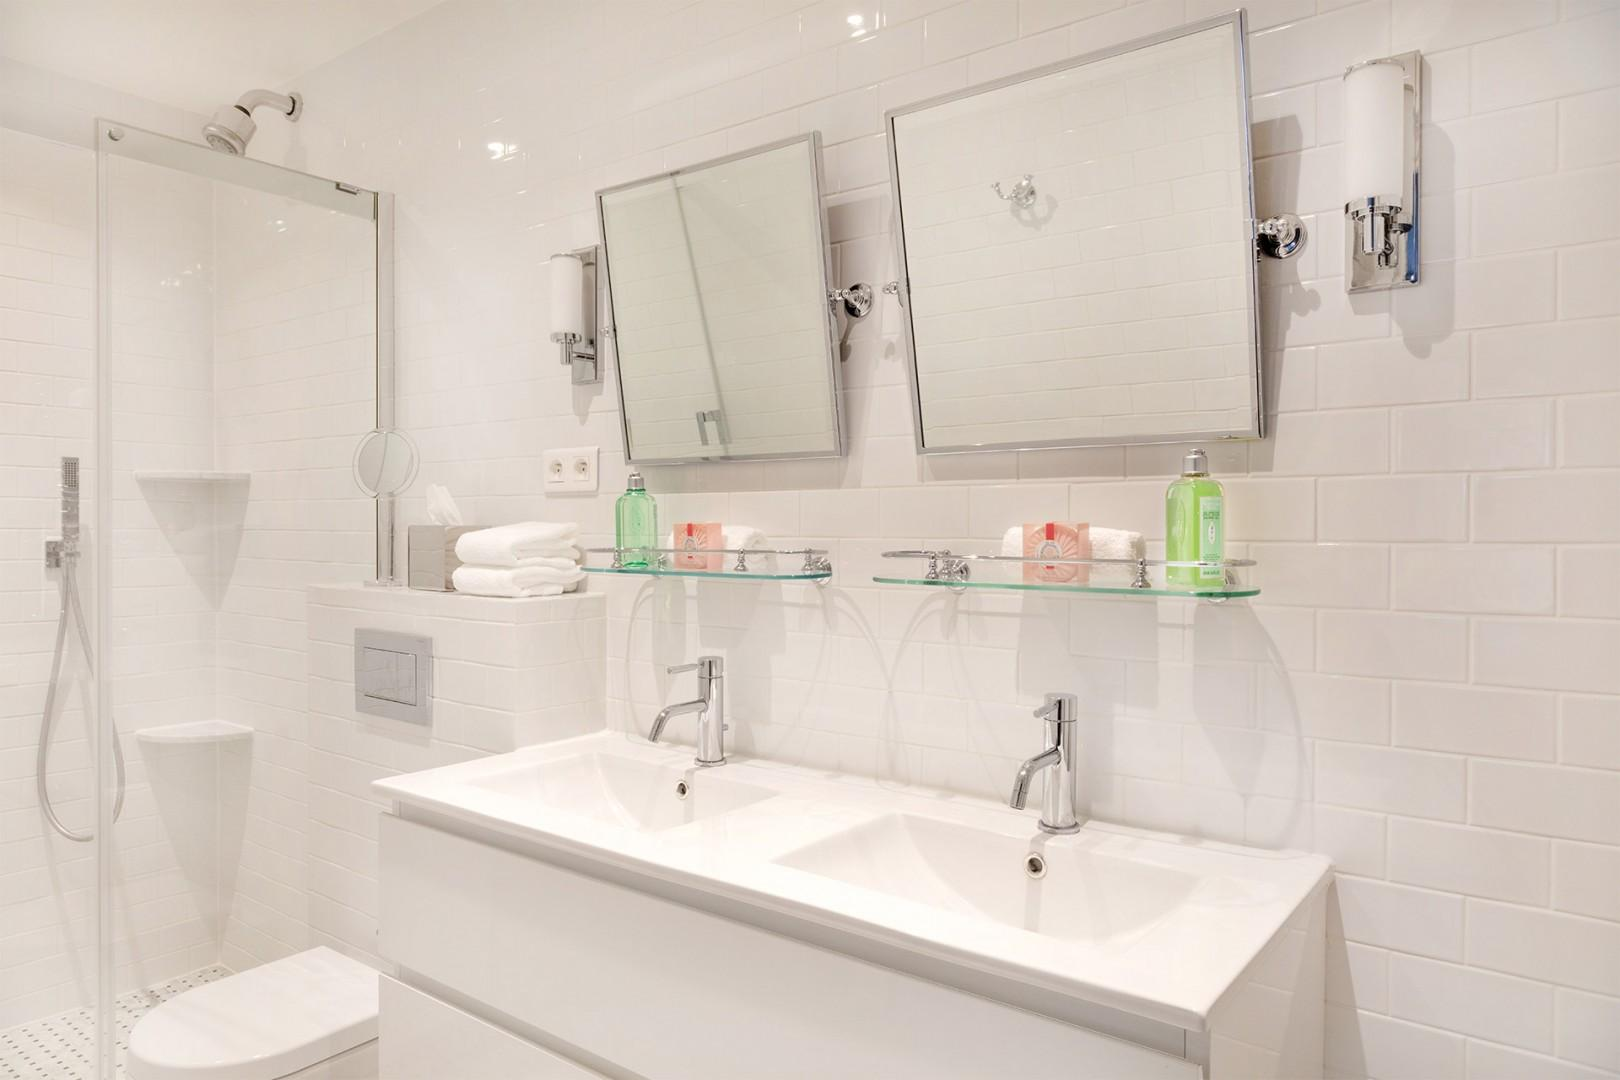 The en suite bathroom is equipped with a shower, toilet and double sink.